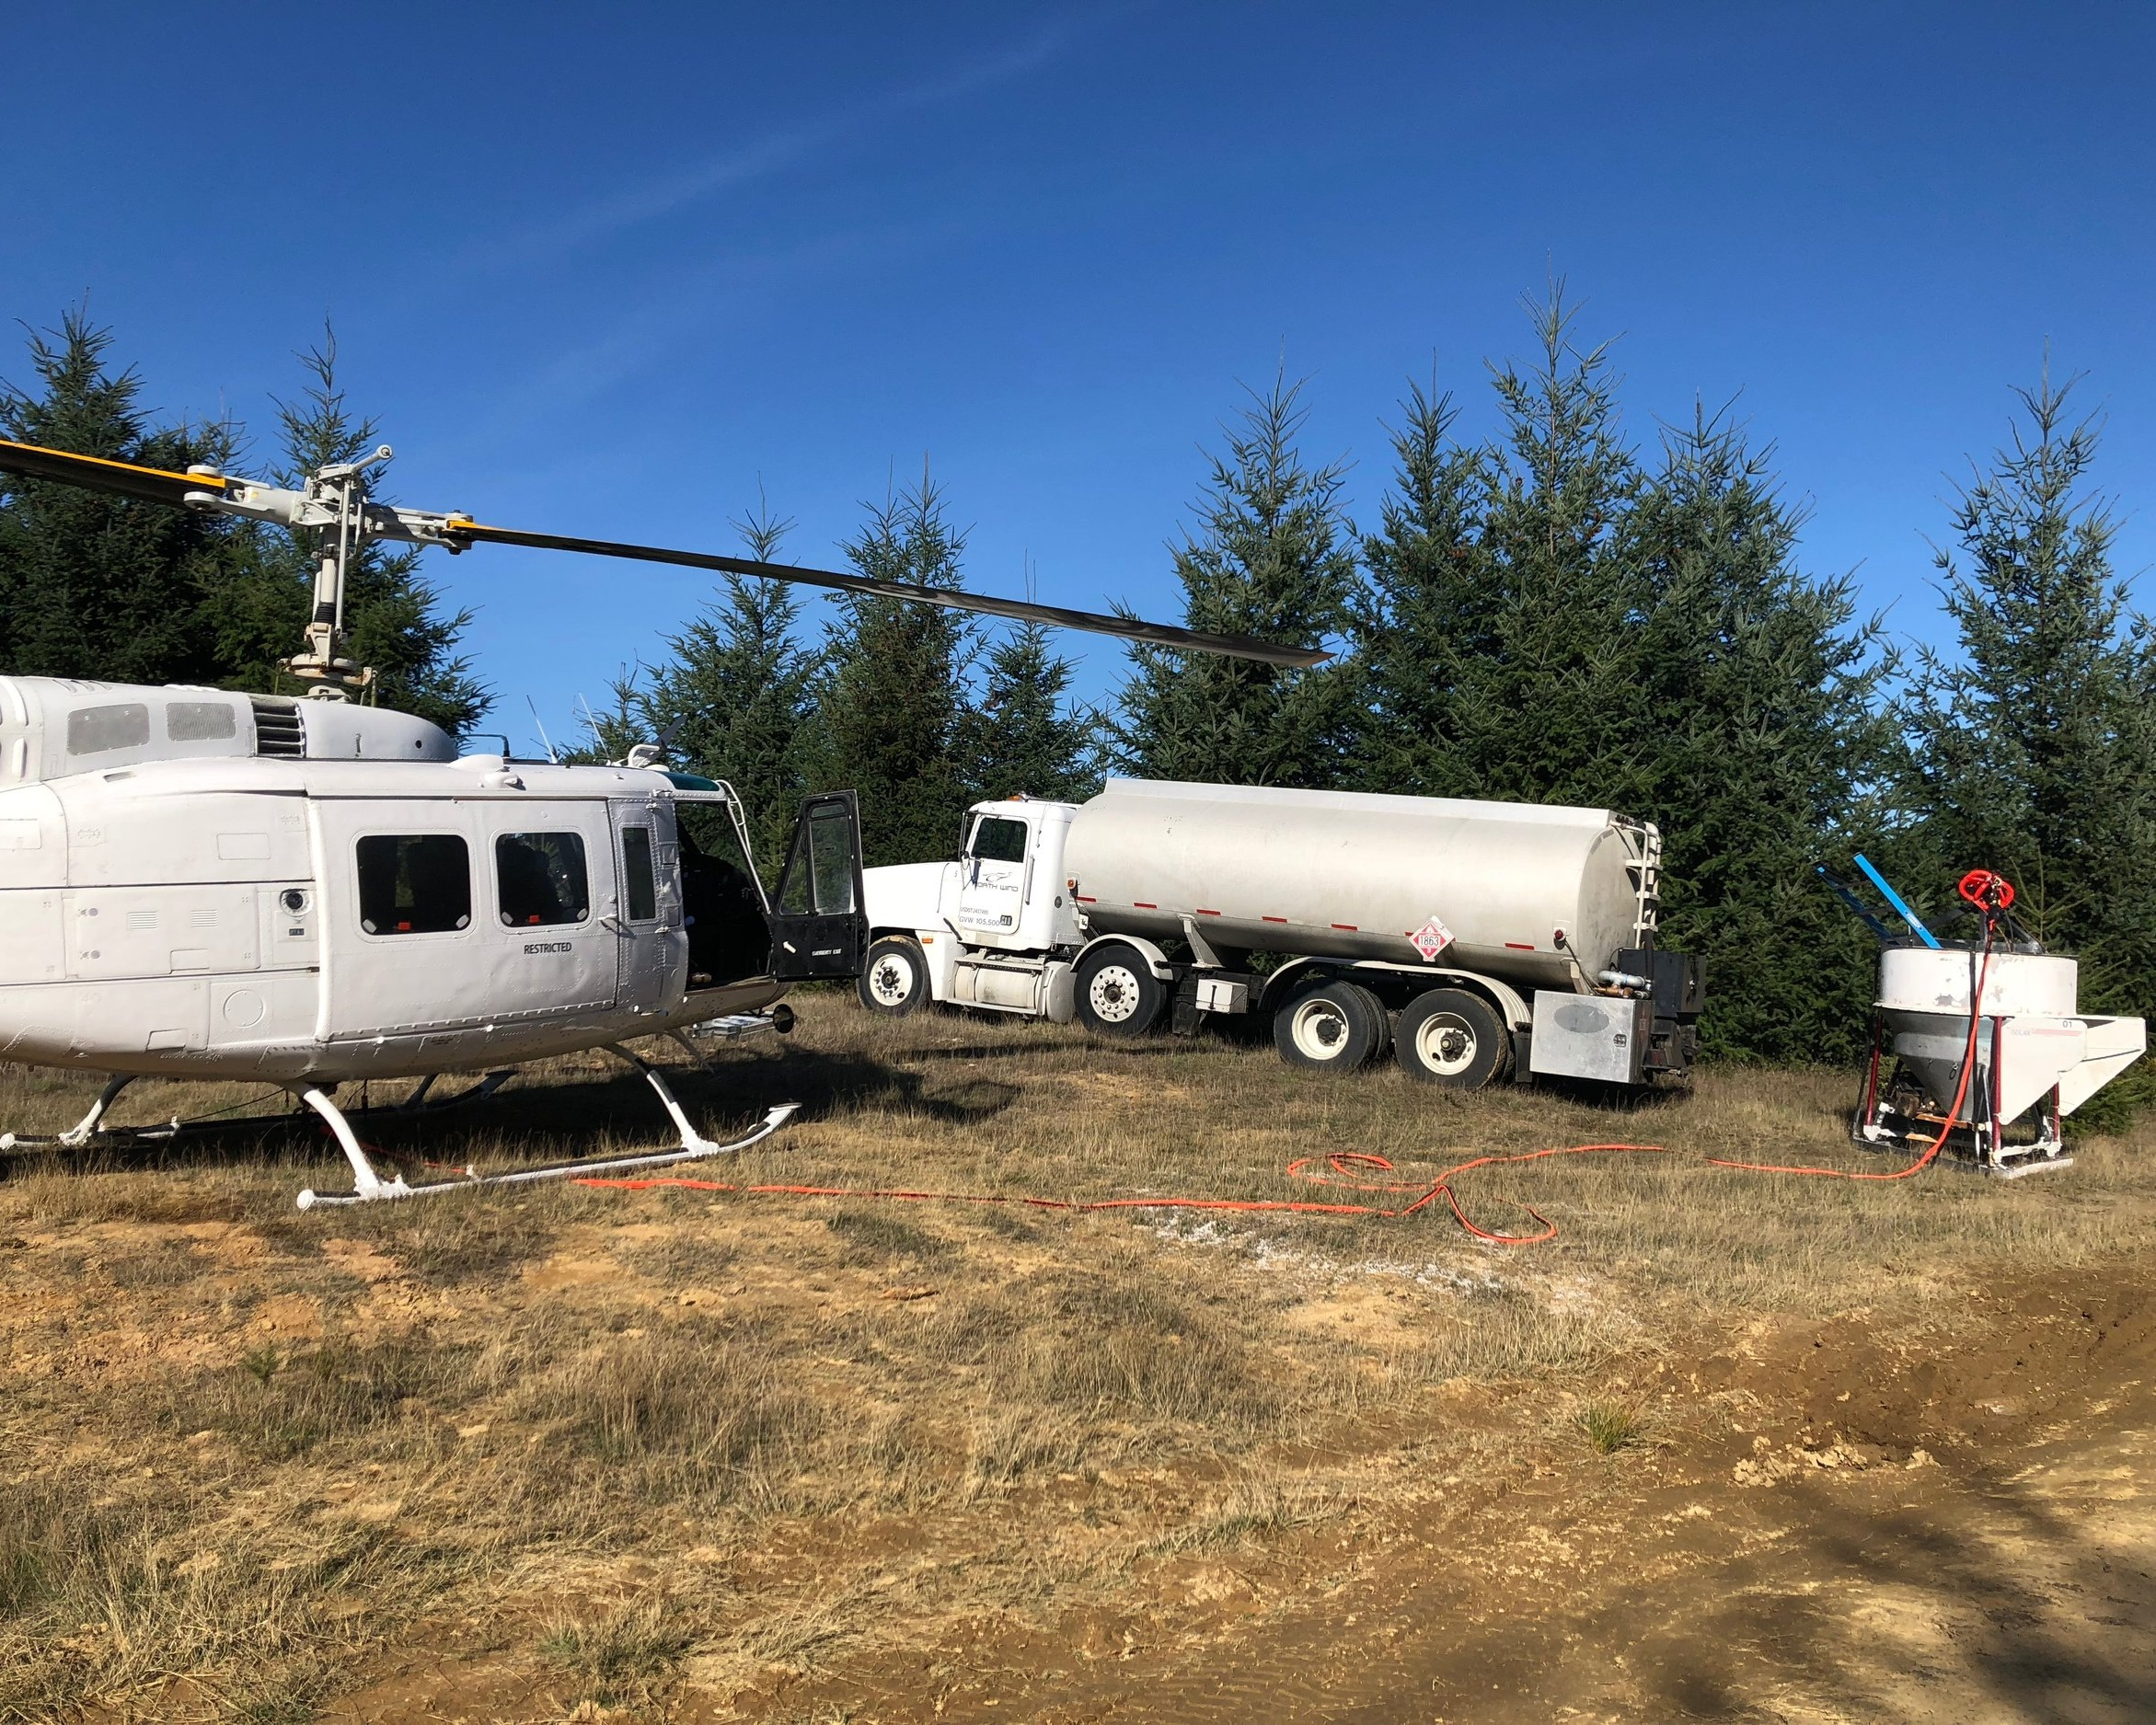 Forestry - With top level GPS mapping tools and our customers can have detailed records of aerial applications. Whether it is fertilizing or herbicide applications, North Wind makes sure your job is done on time and on budget. We do a lot of work in Roseburg, OR but we can go anywhere in the northwest.